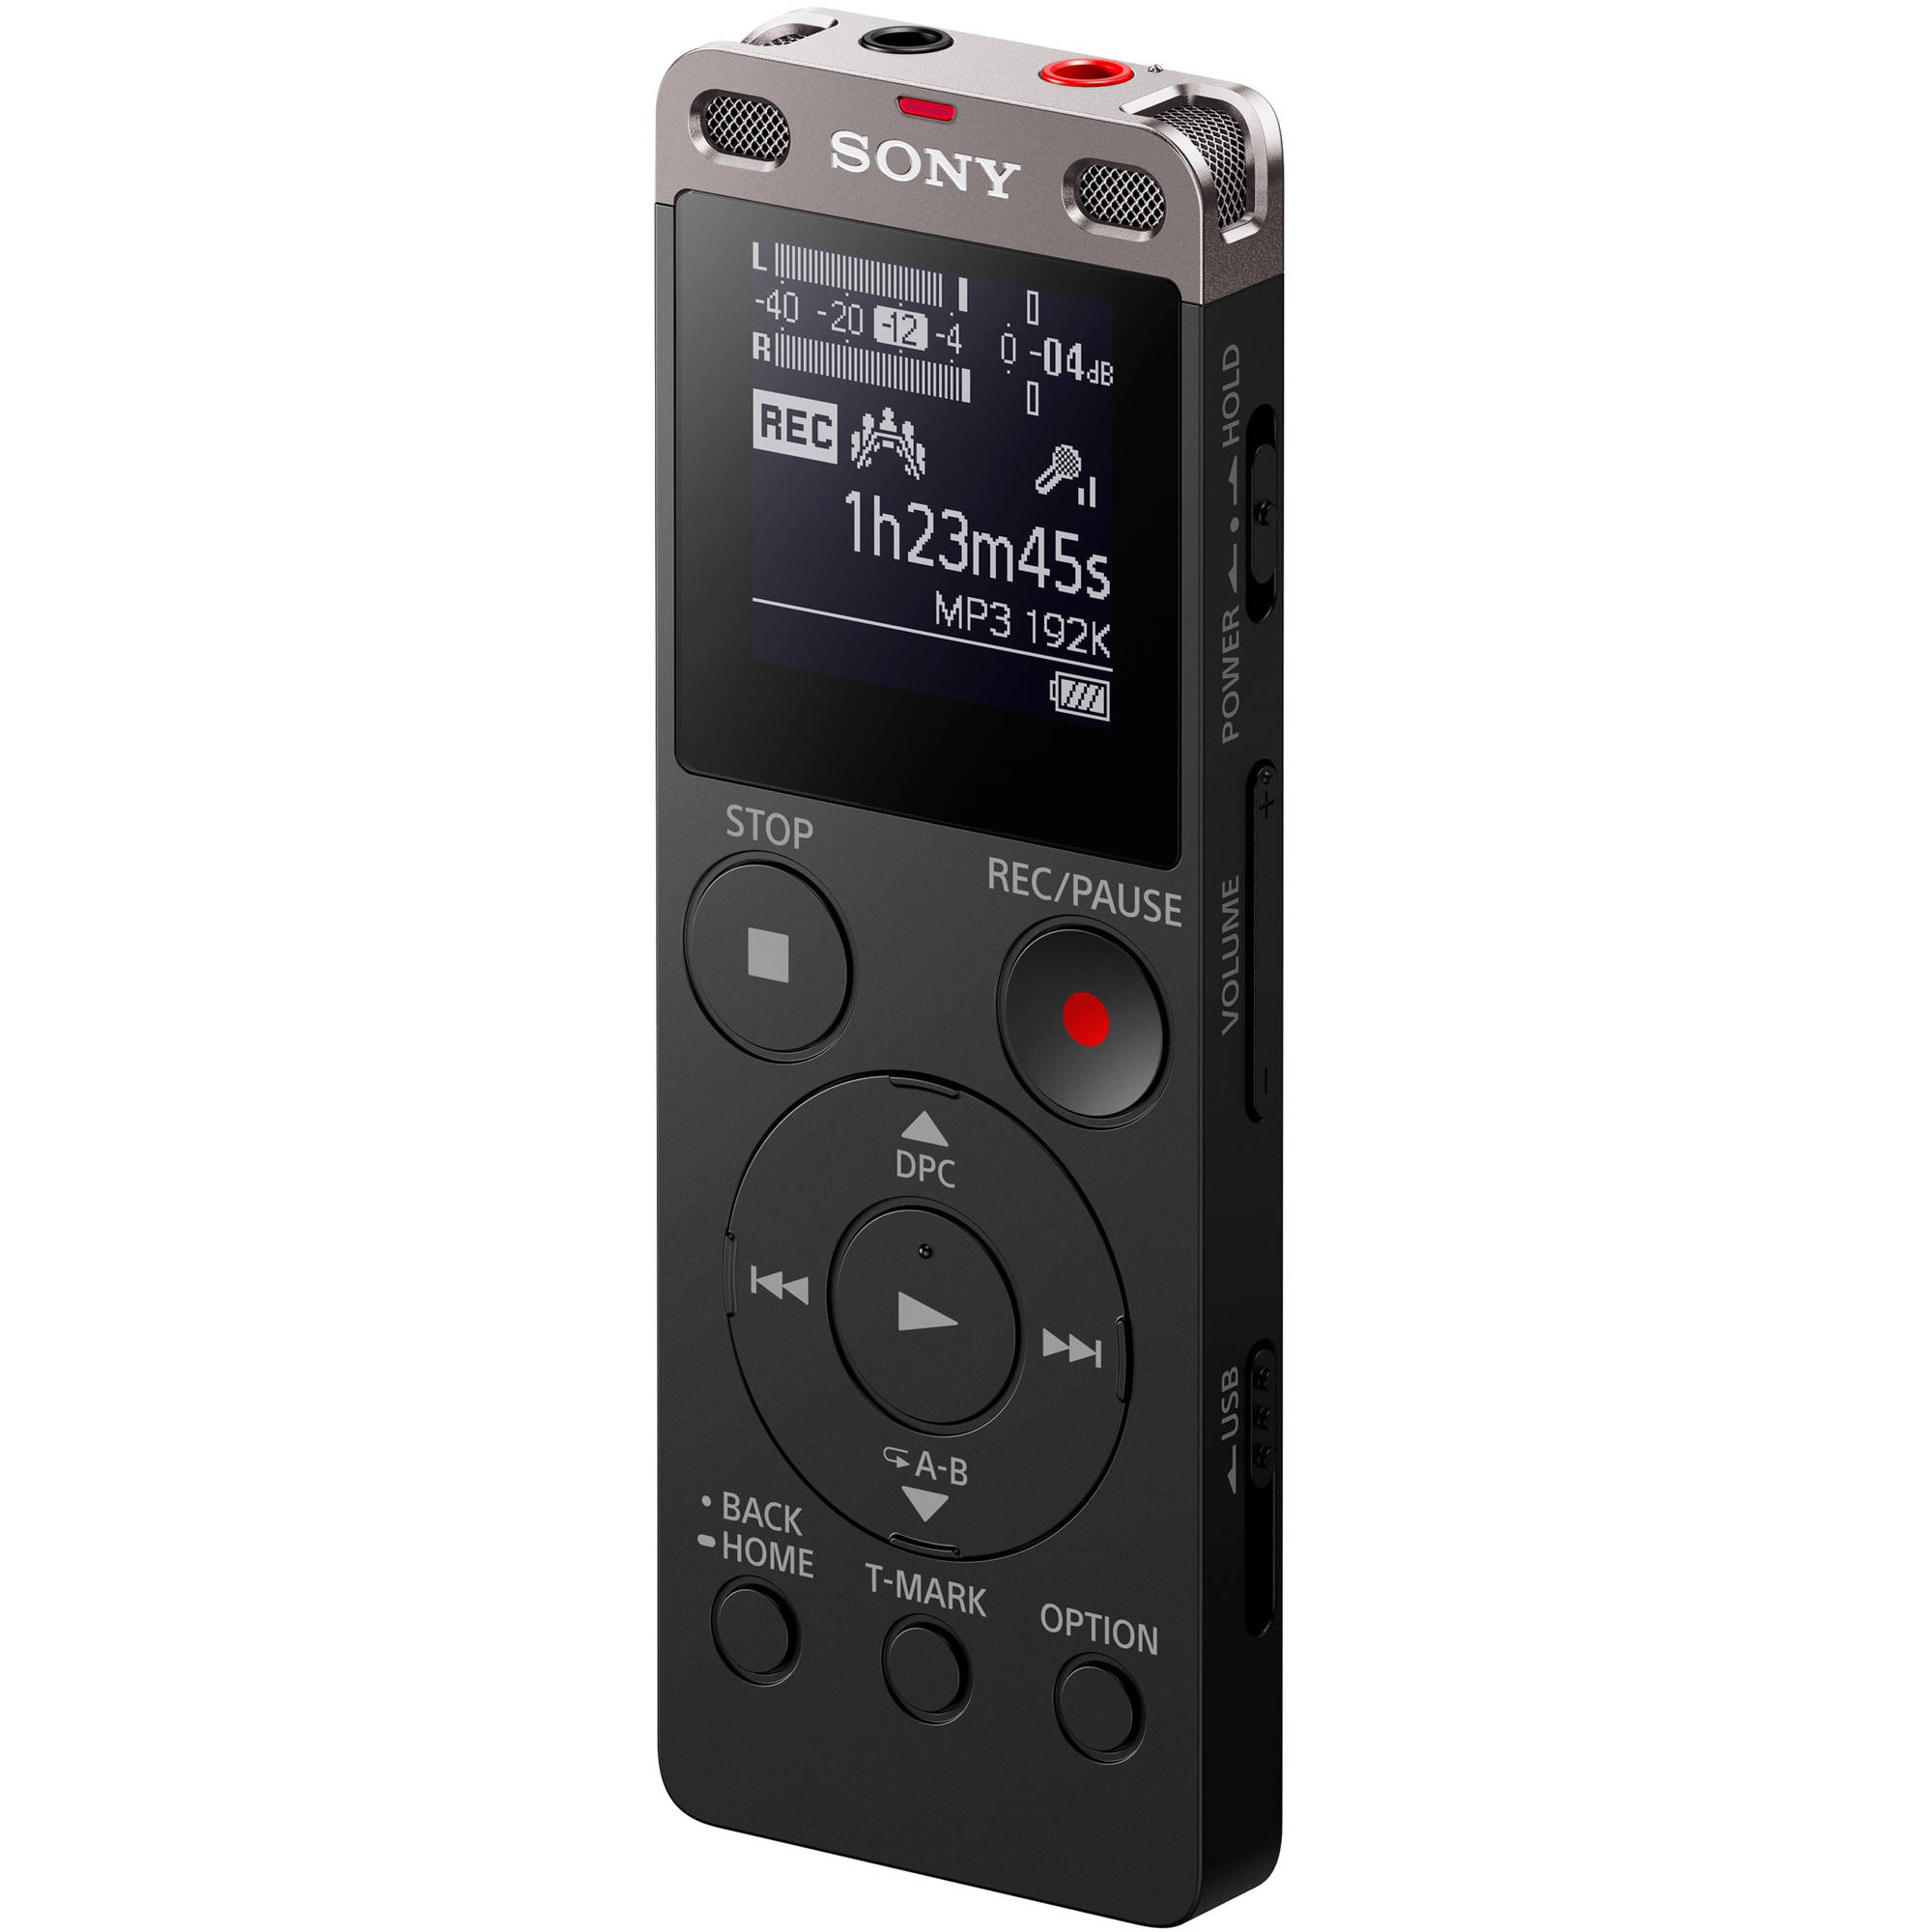 Sony ICD-UX560 Digital Voice Recorder with Built-In